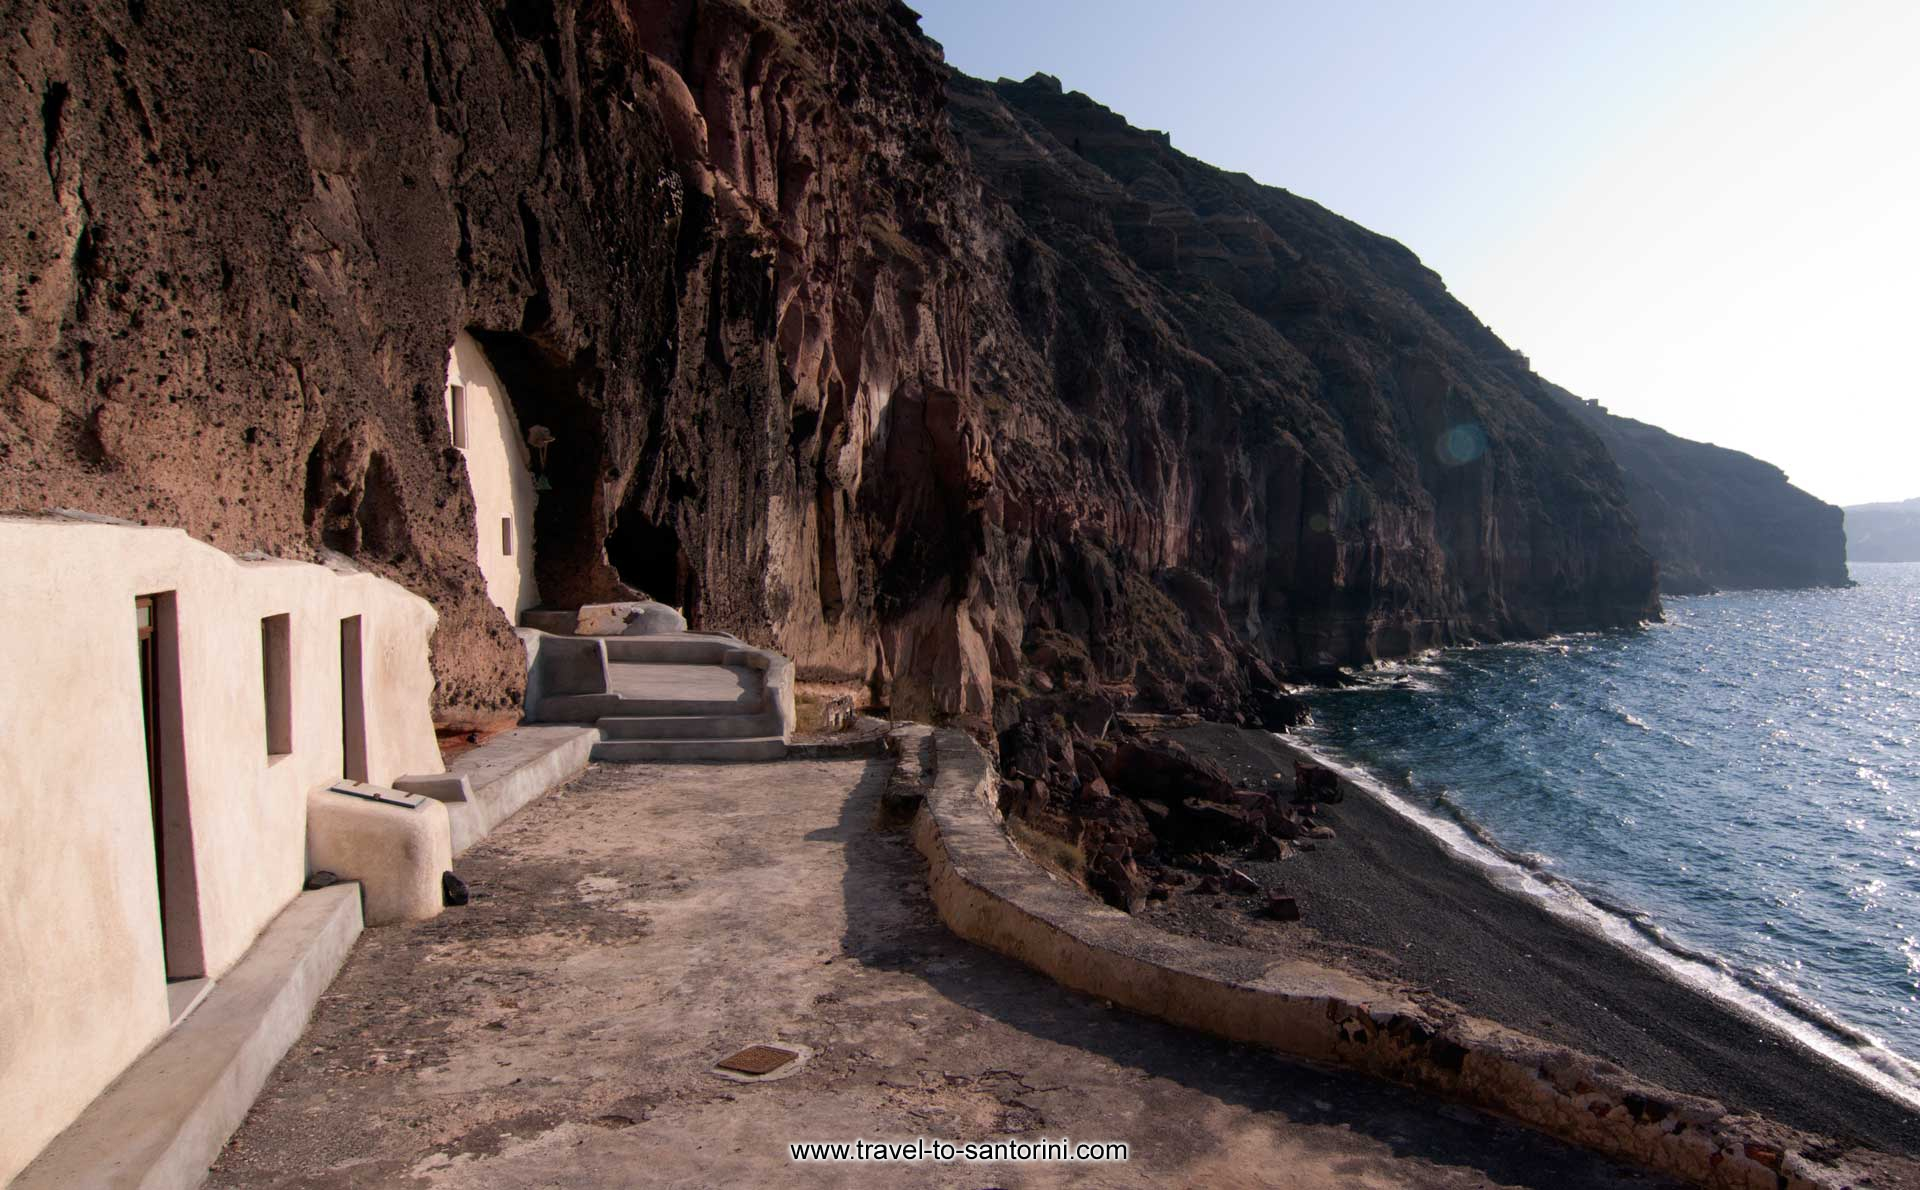 Christos church - View of the church of Christos above the beautiful beach